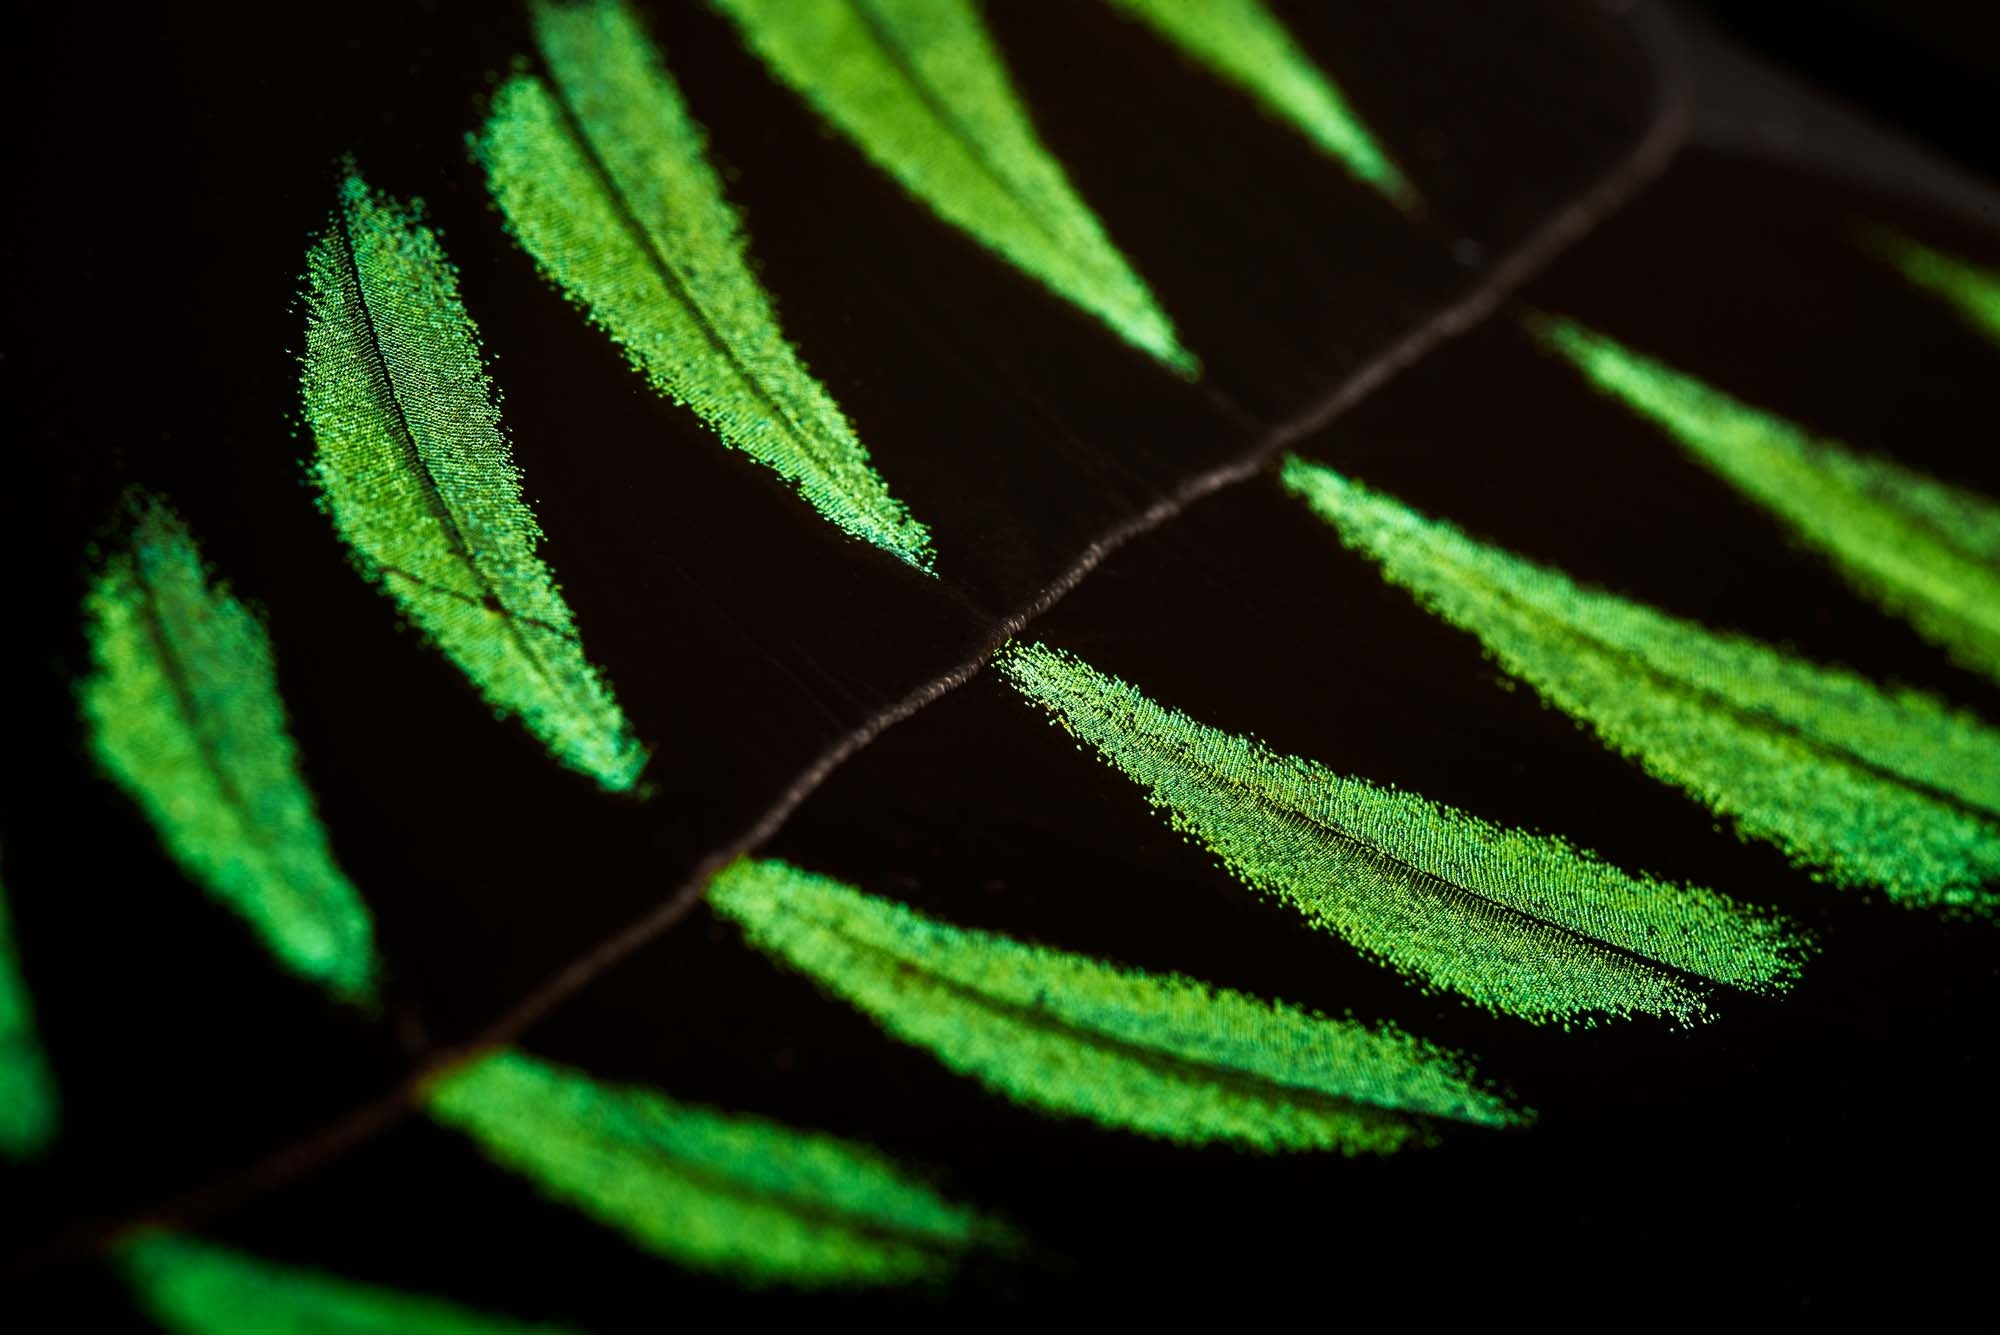 Close-up of RAJAH BROOKE real butterfly wing art in the colours black and green illustrating KHAMAMA's positive impact